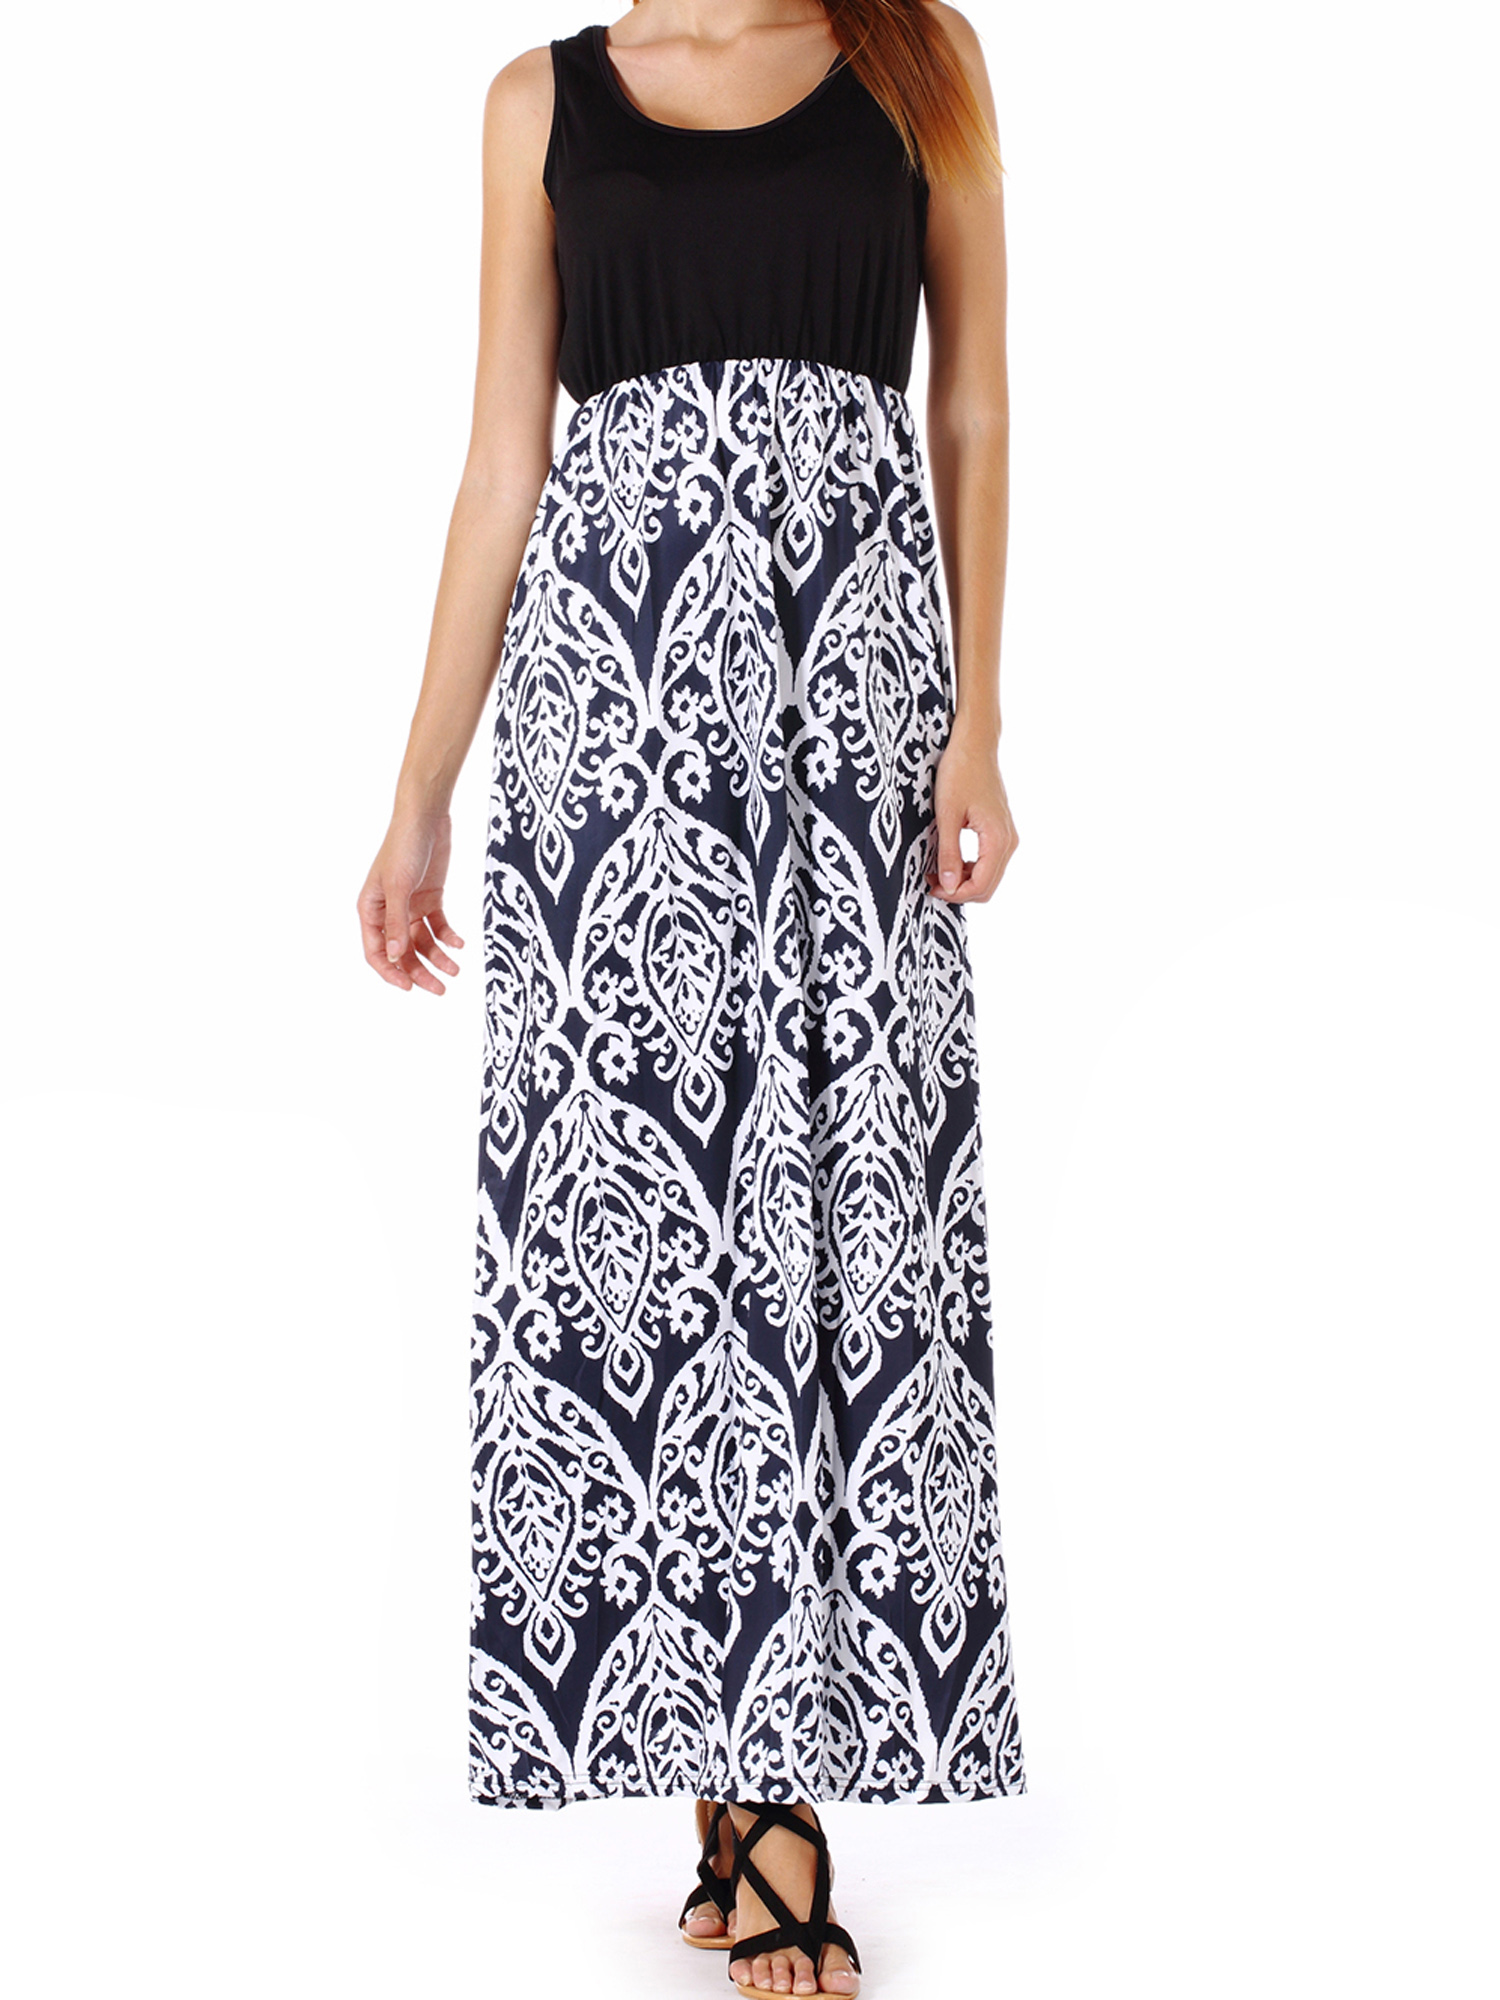 Pregnant Maternity Loose Fit Sleeveless Maxi Dresses Spliced Ethnic